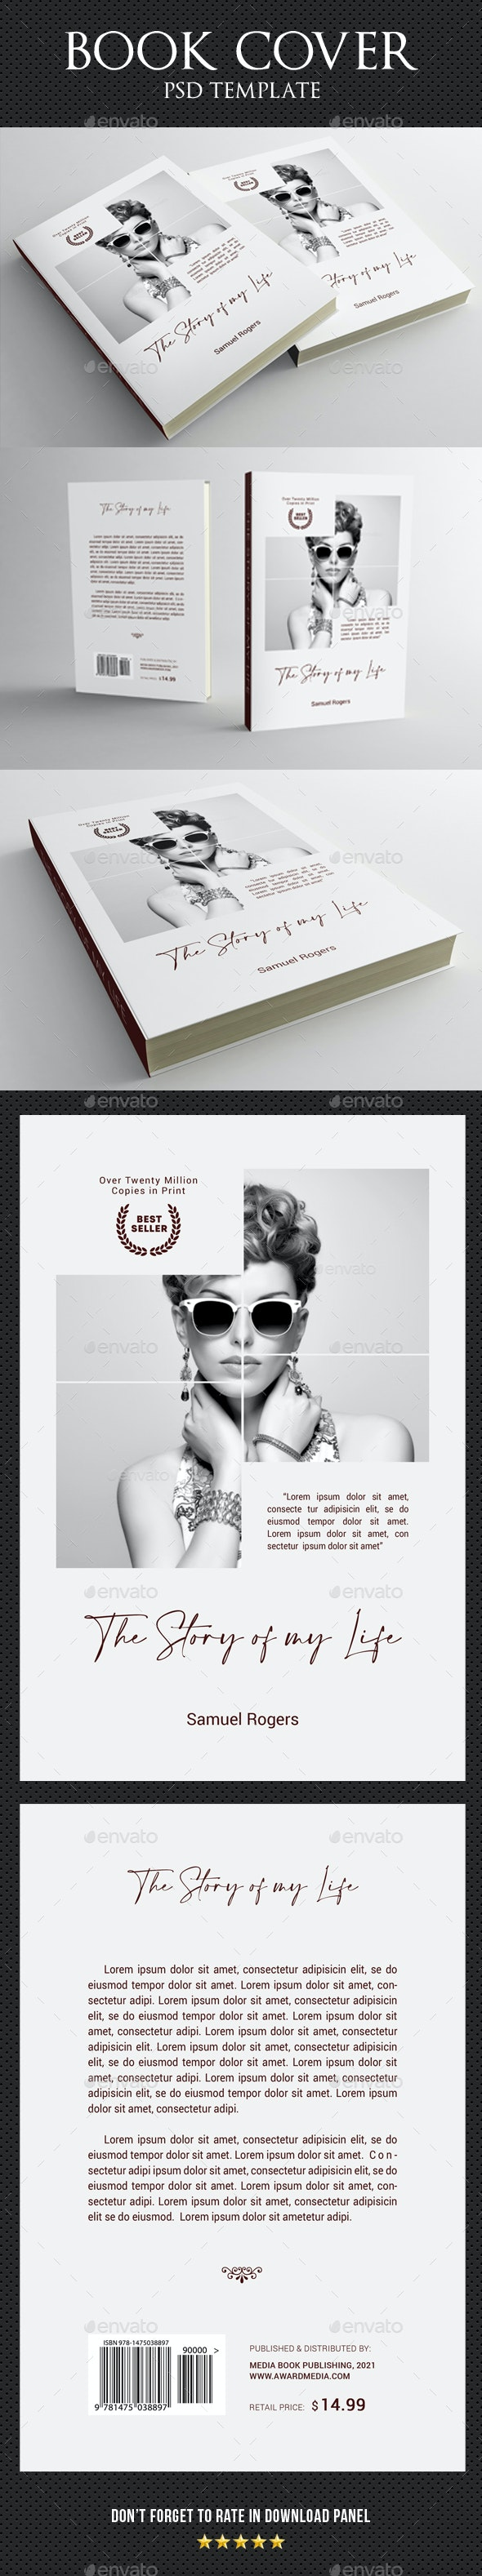 Book Cover Template 89 - Miscellaneous Print Templates